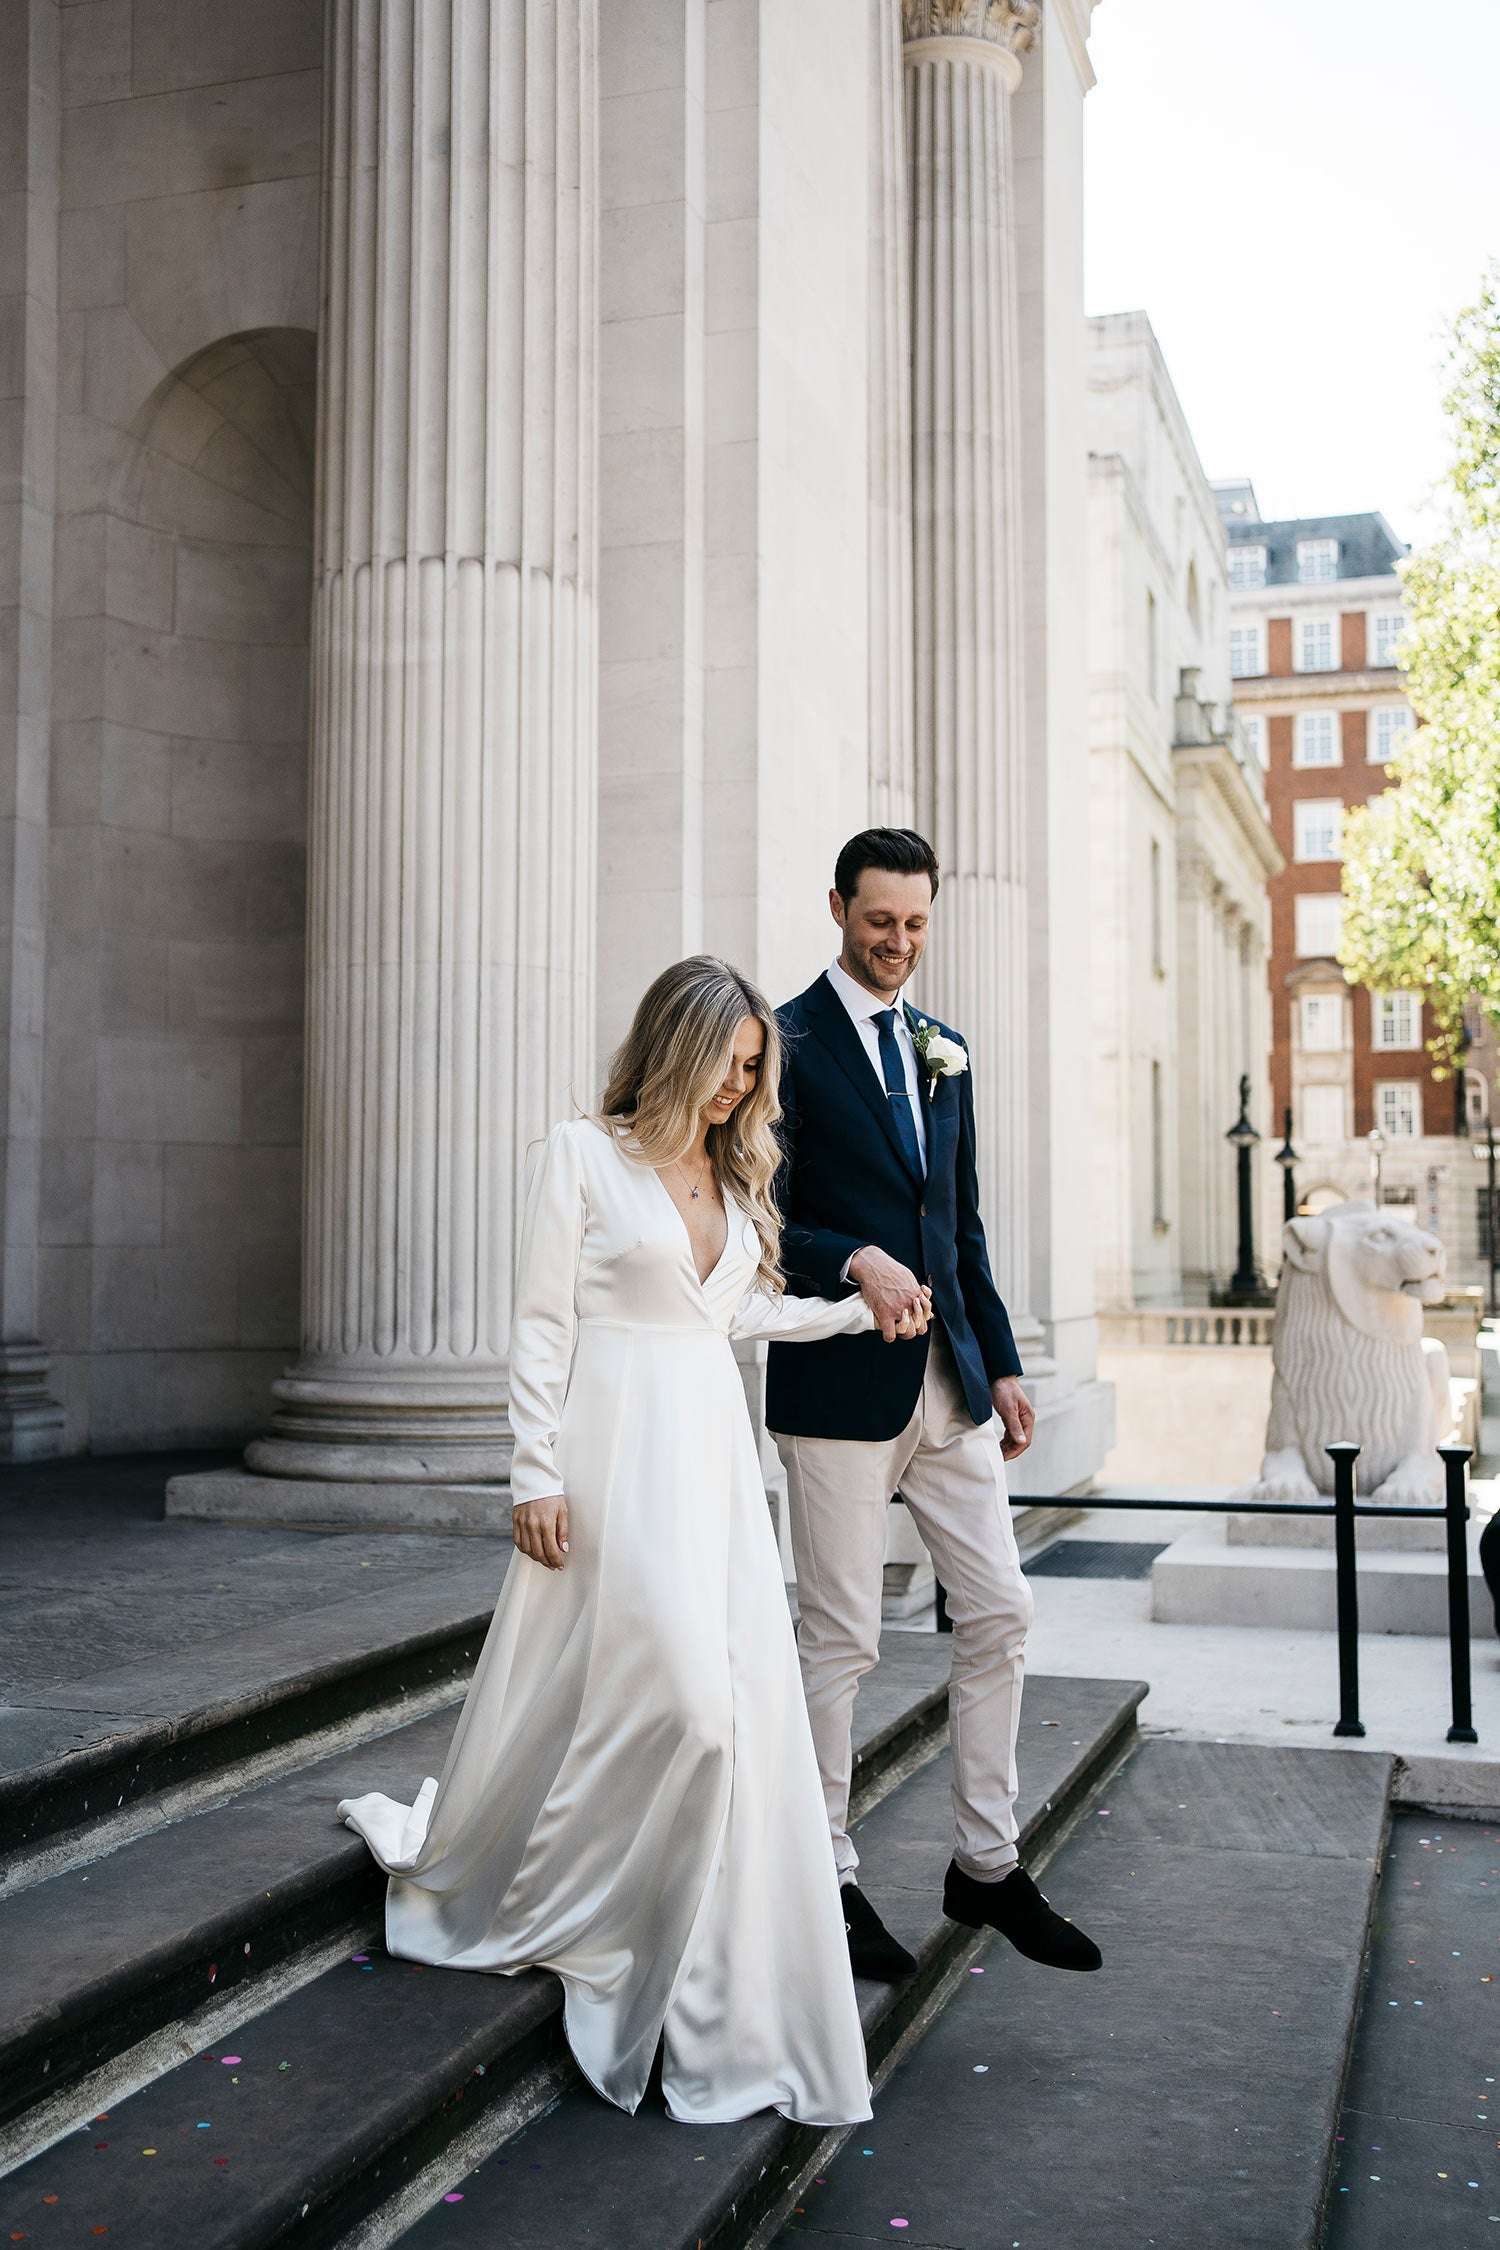 Our bride Charlotte wearing our Olsen Silk Wedding Dress shortly after her weding at Marylebond Town Hall